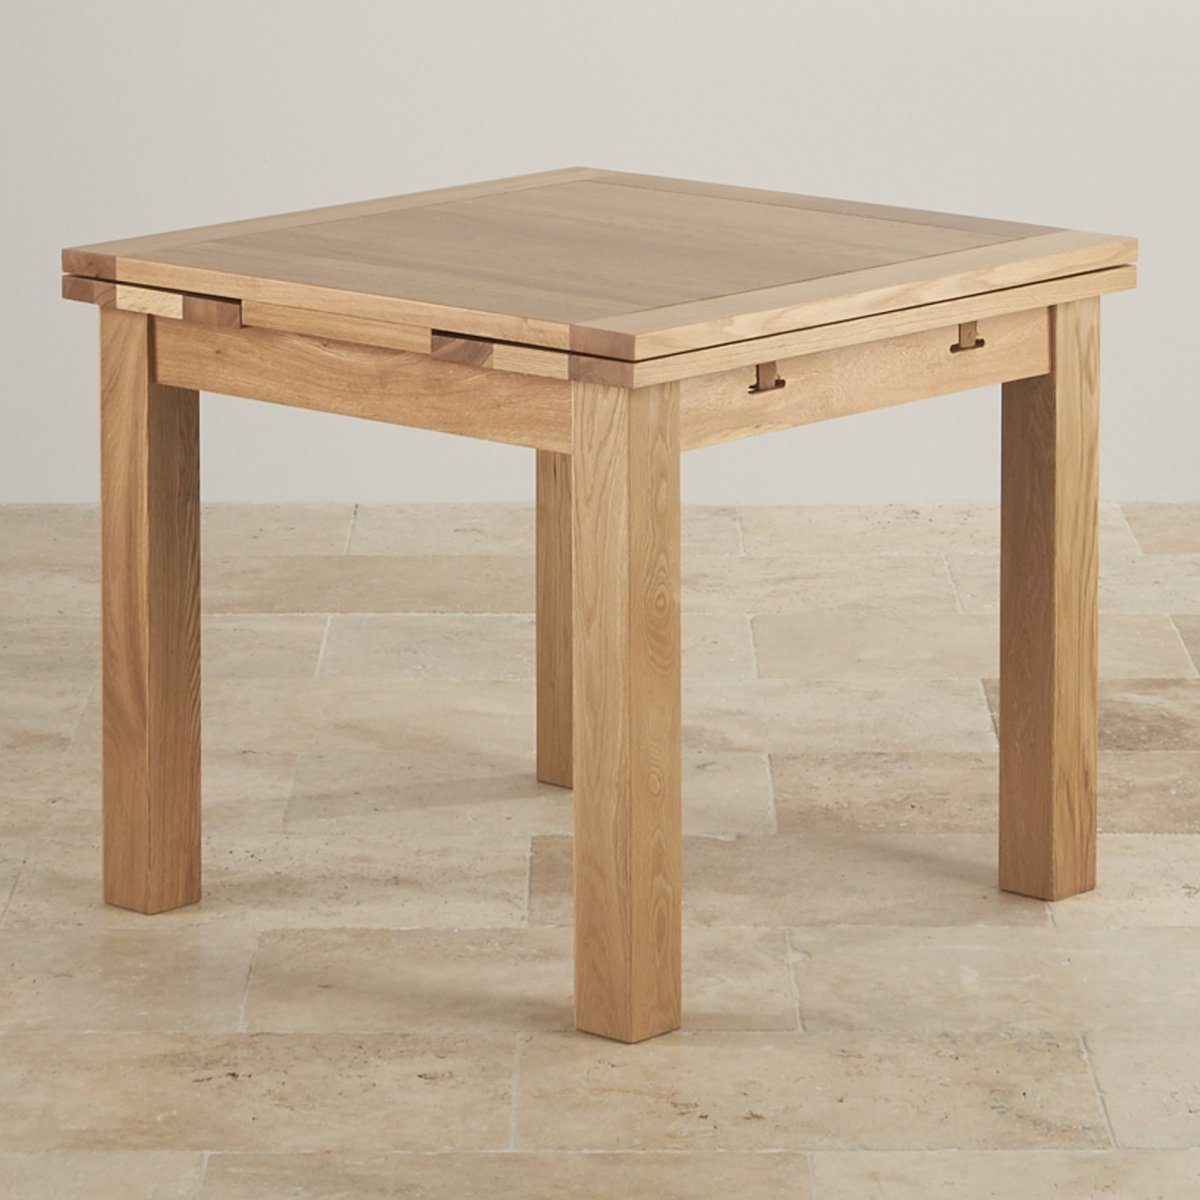 Oak Furniture Land Bedroom Furniture Dining Tables Dine In Style Oak Furniture Land